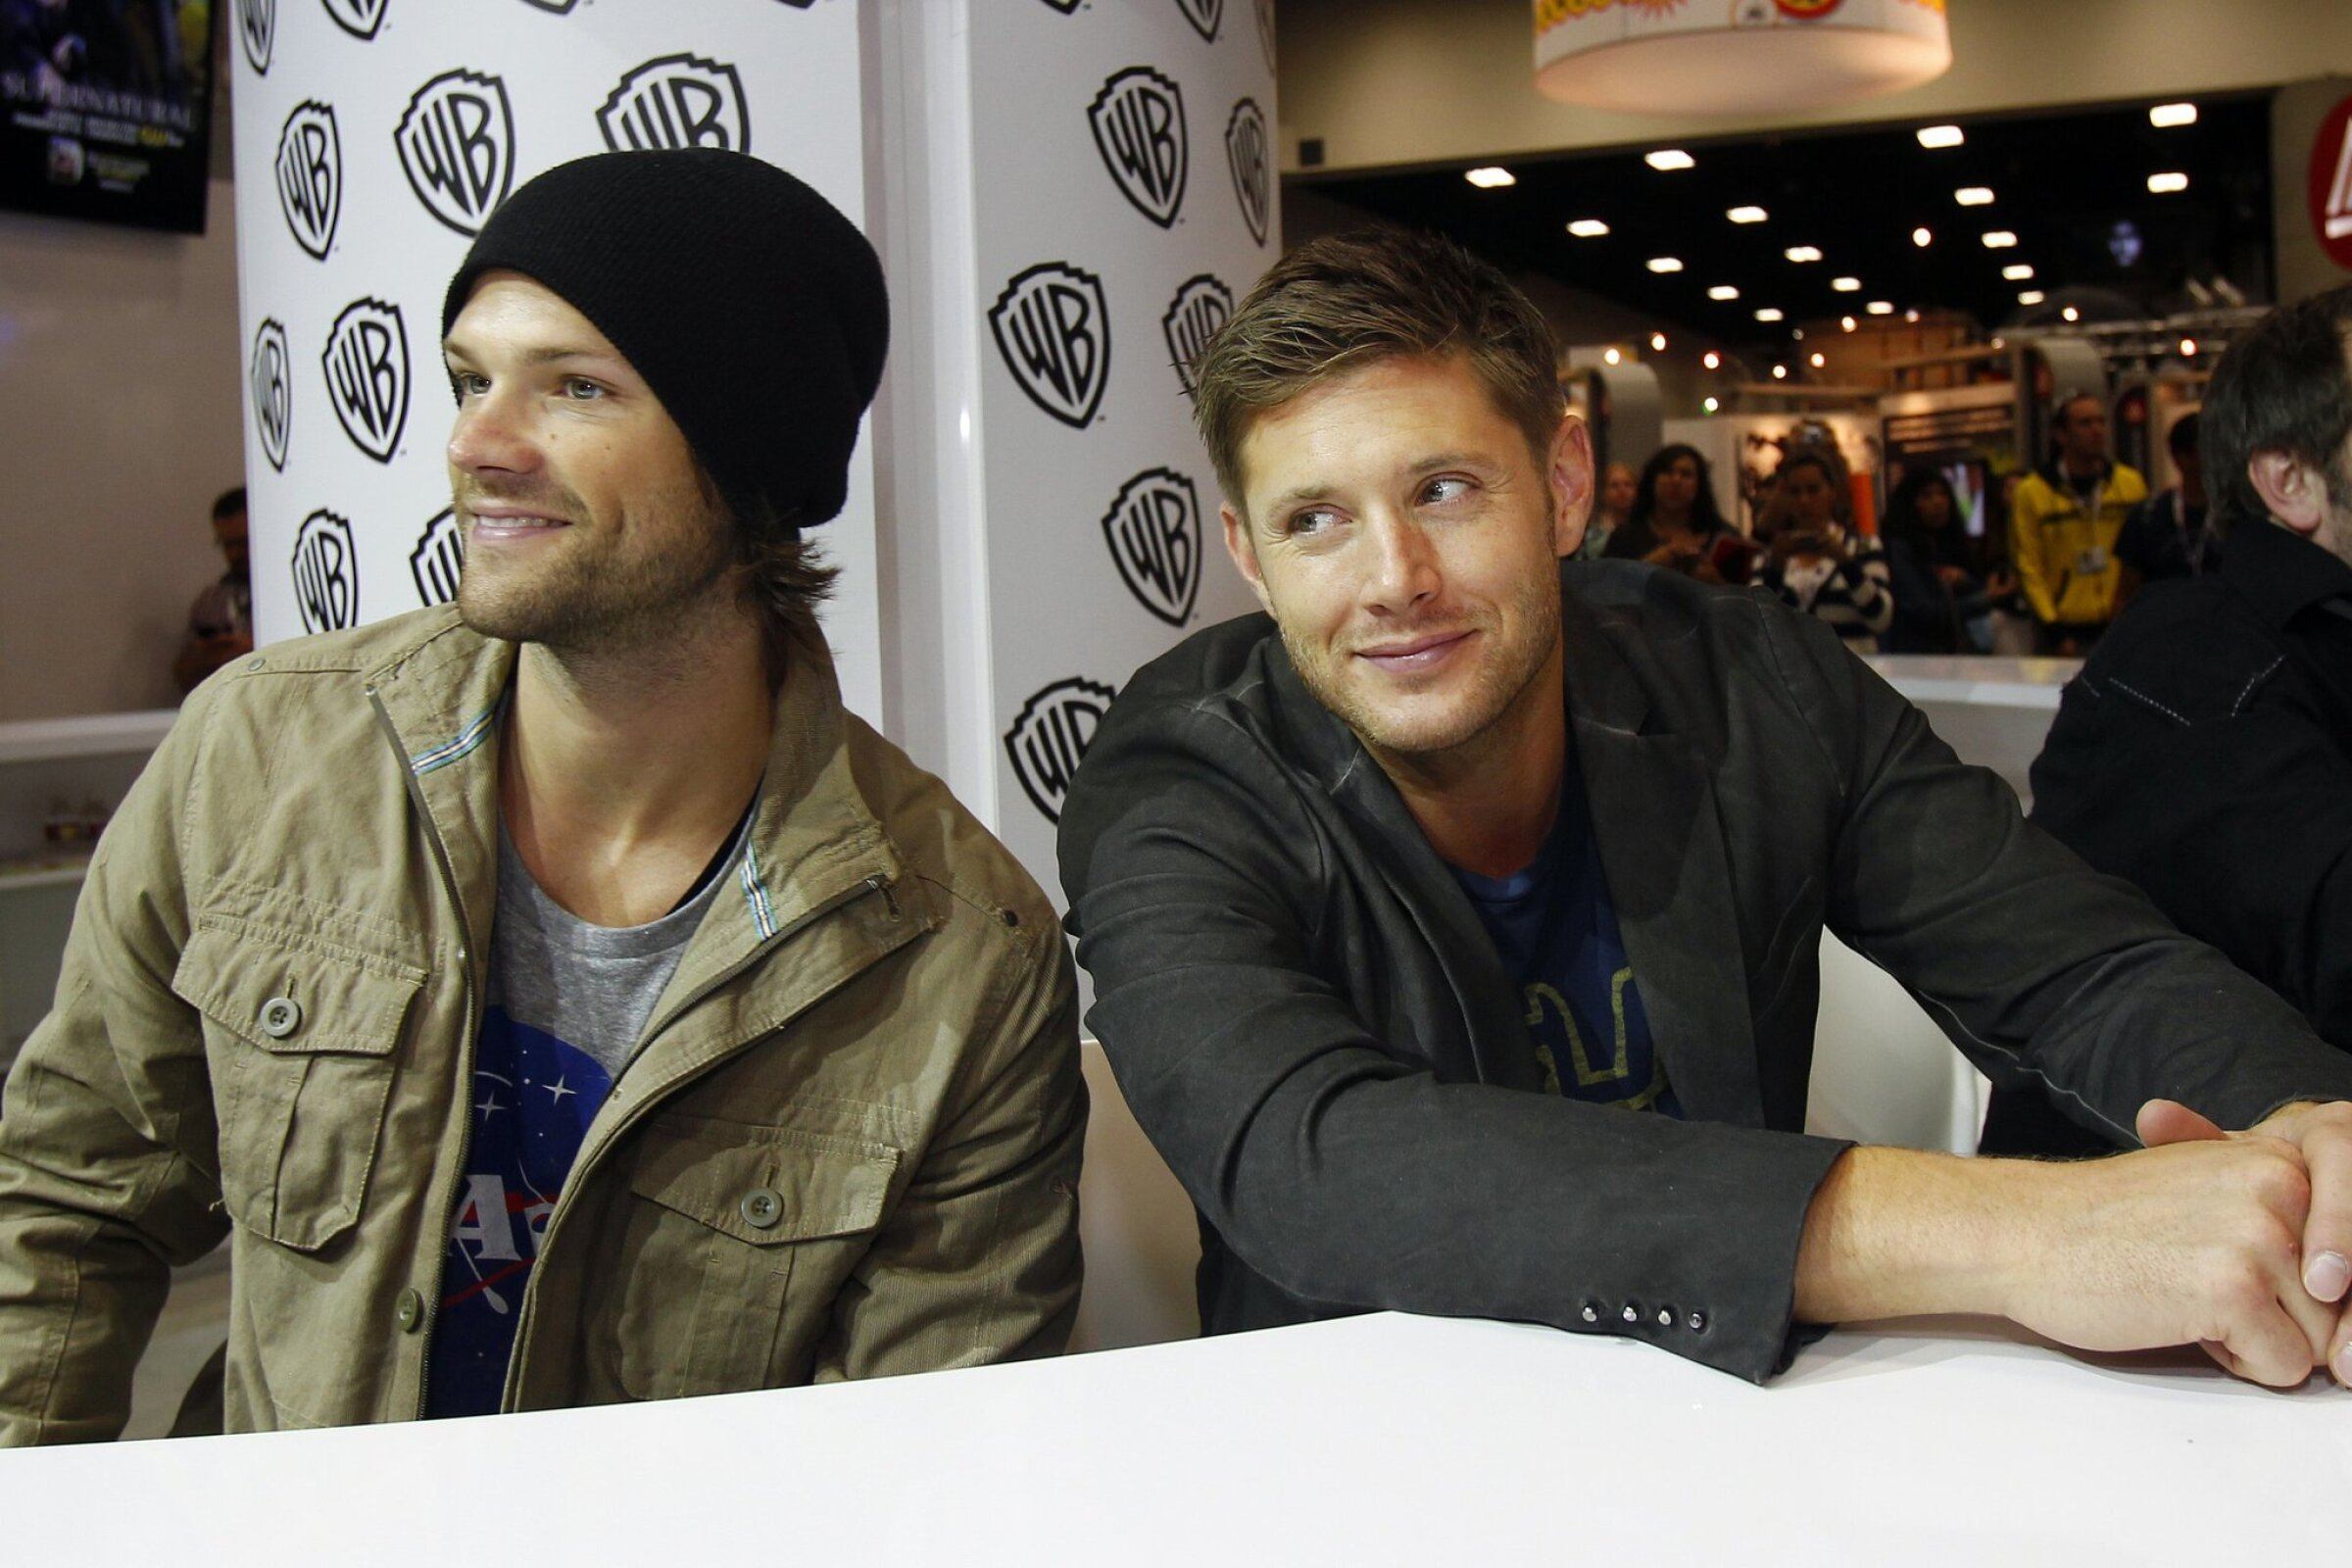 Supernatural at Comic Con